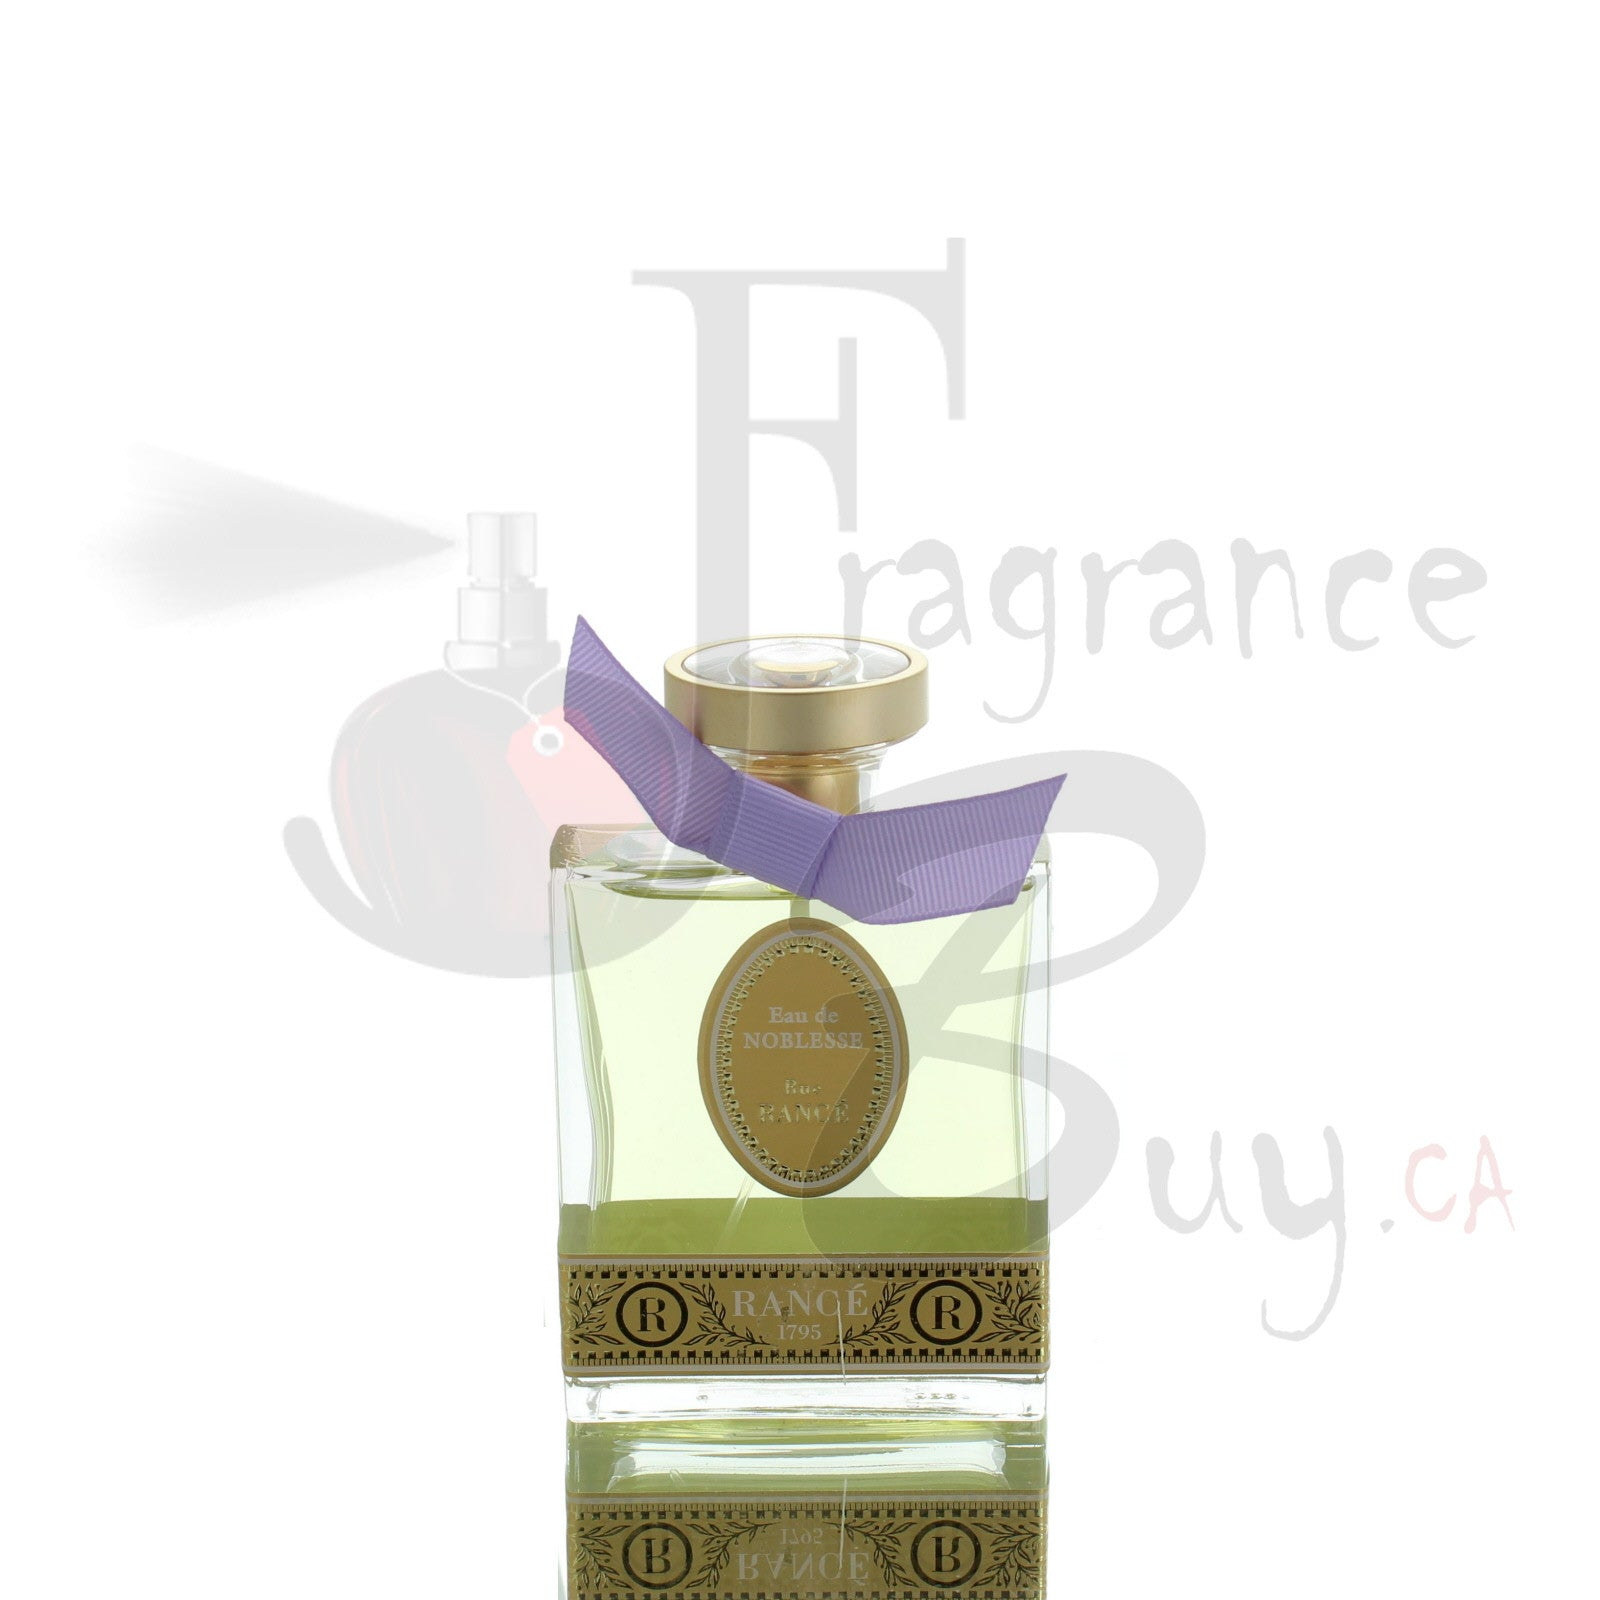 Rance Eau de Noblesse For Woman